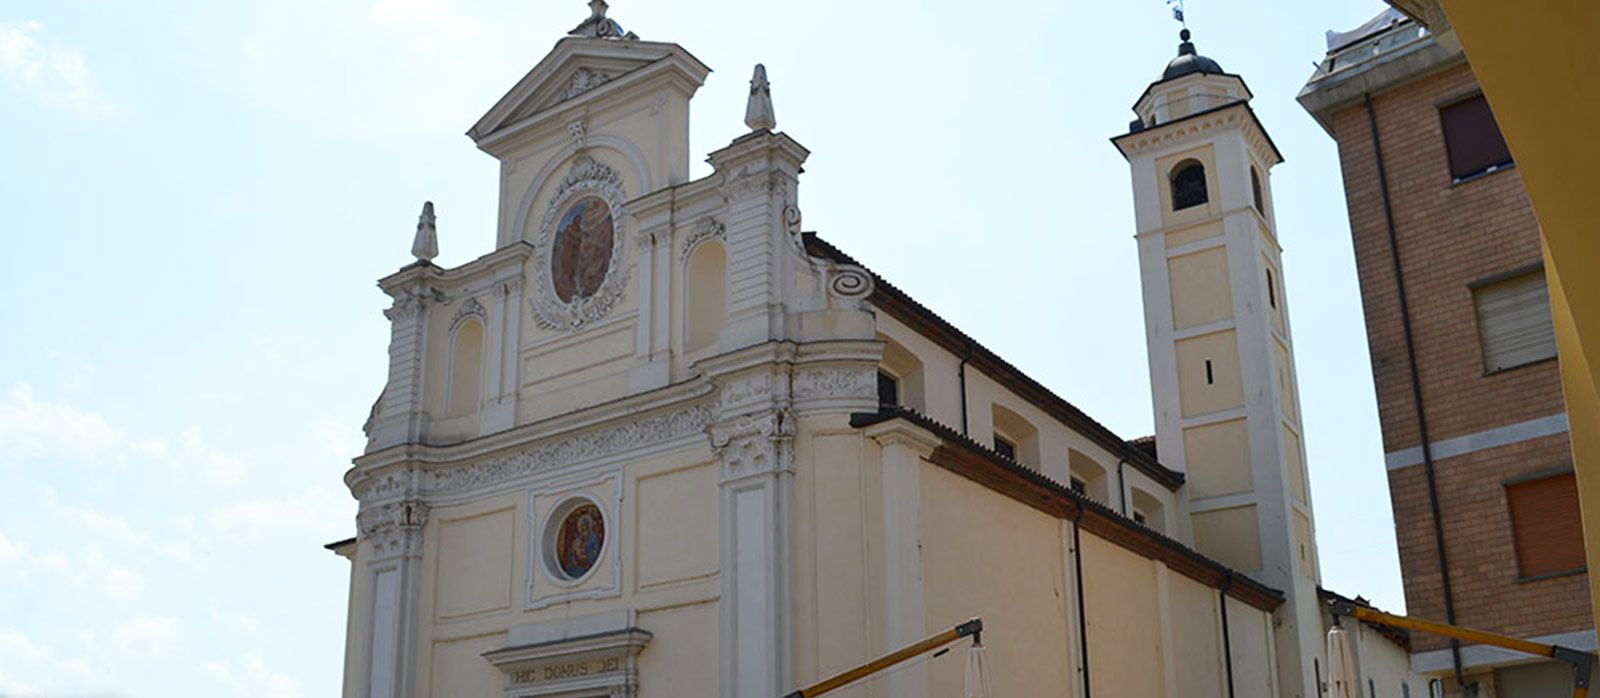 Guided tours of Chiesa di San Giovanni (St. John's Church)